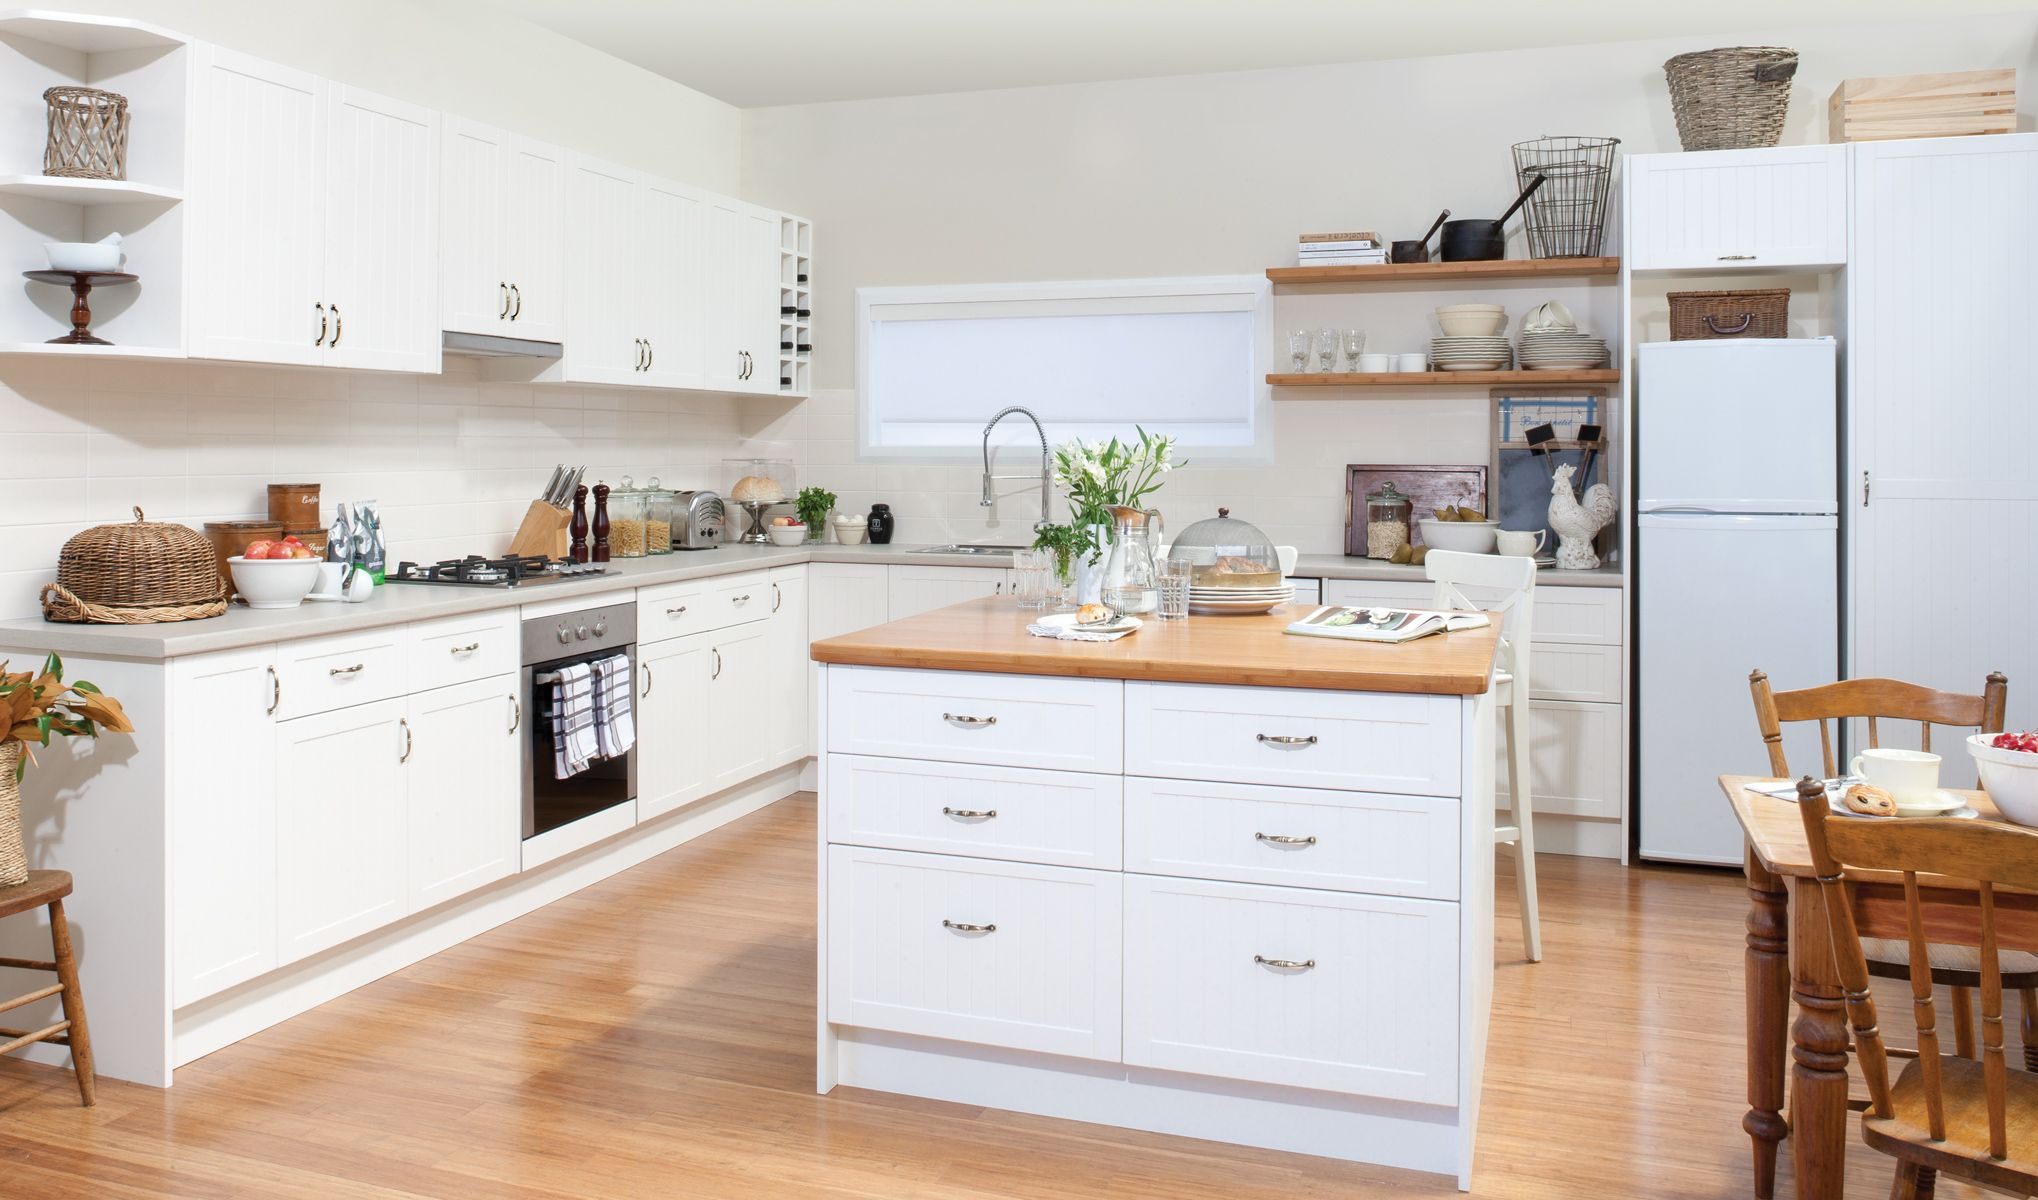 neutral trend | Antique white cabinets, White cabinets and Kitchens